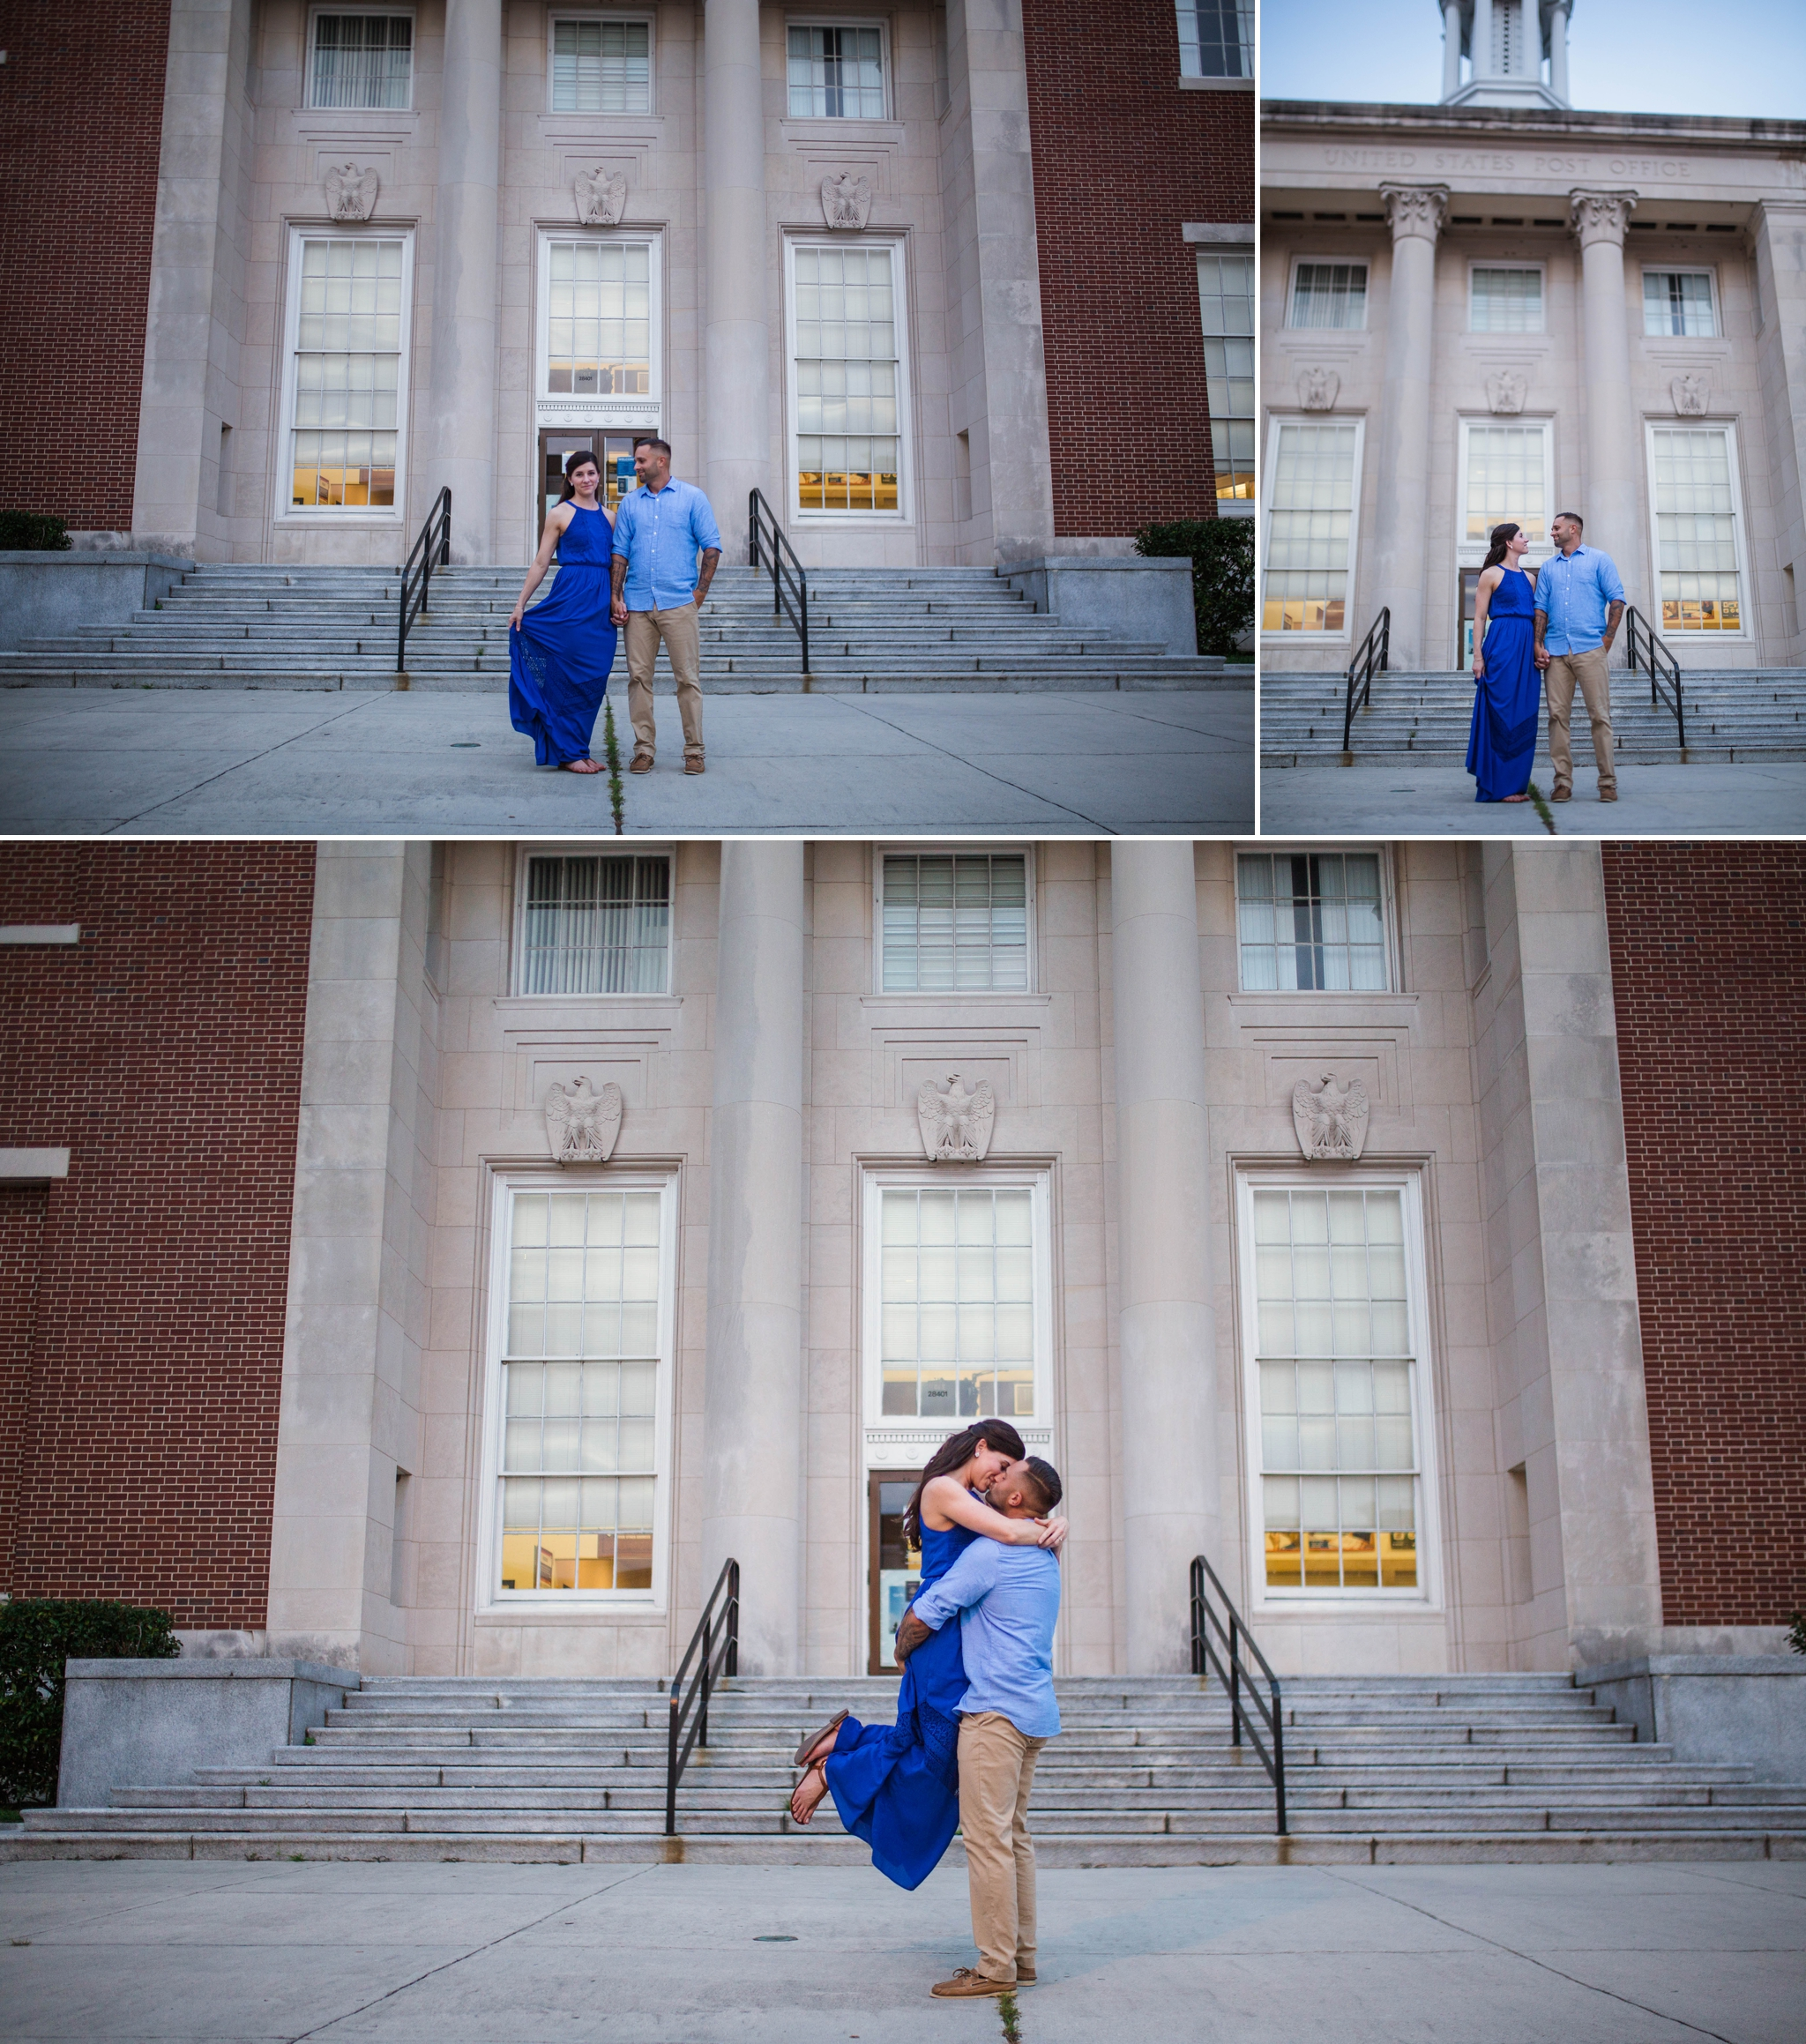 Engagement Photography Session in Downtown Wilmington, North Carolina - Wedding Photographer in NC  7.jpg